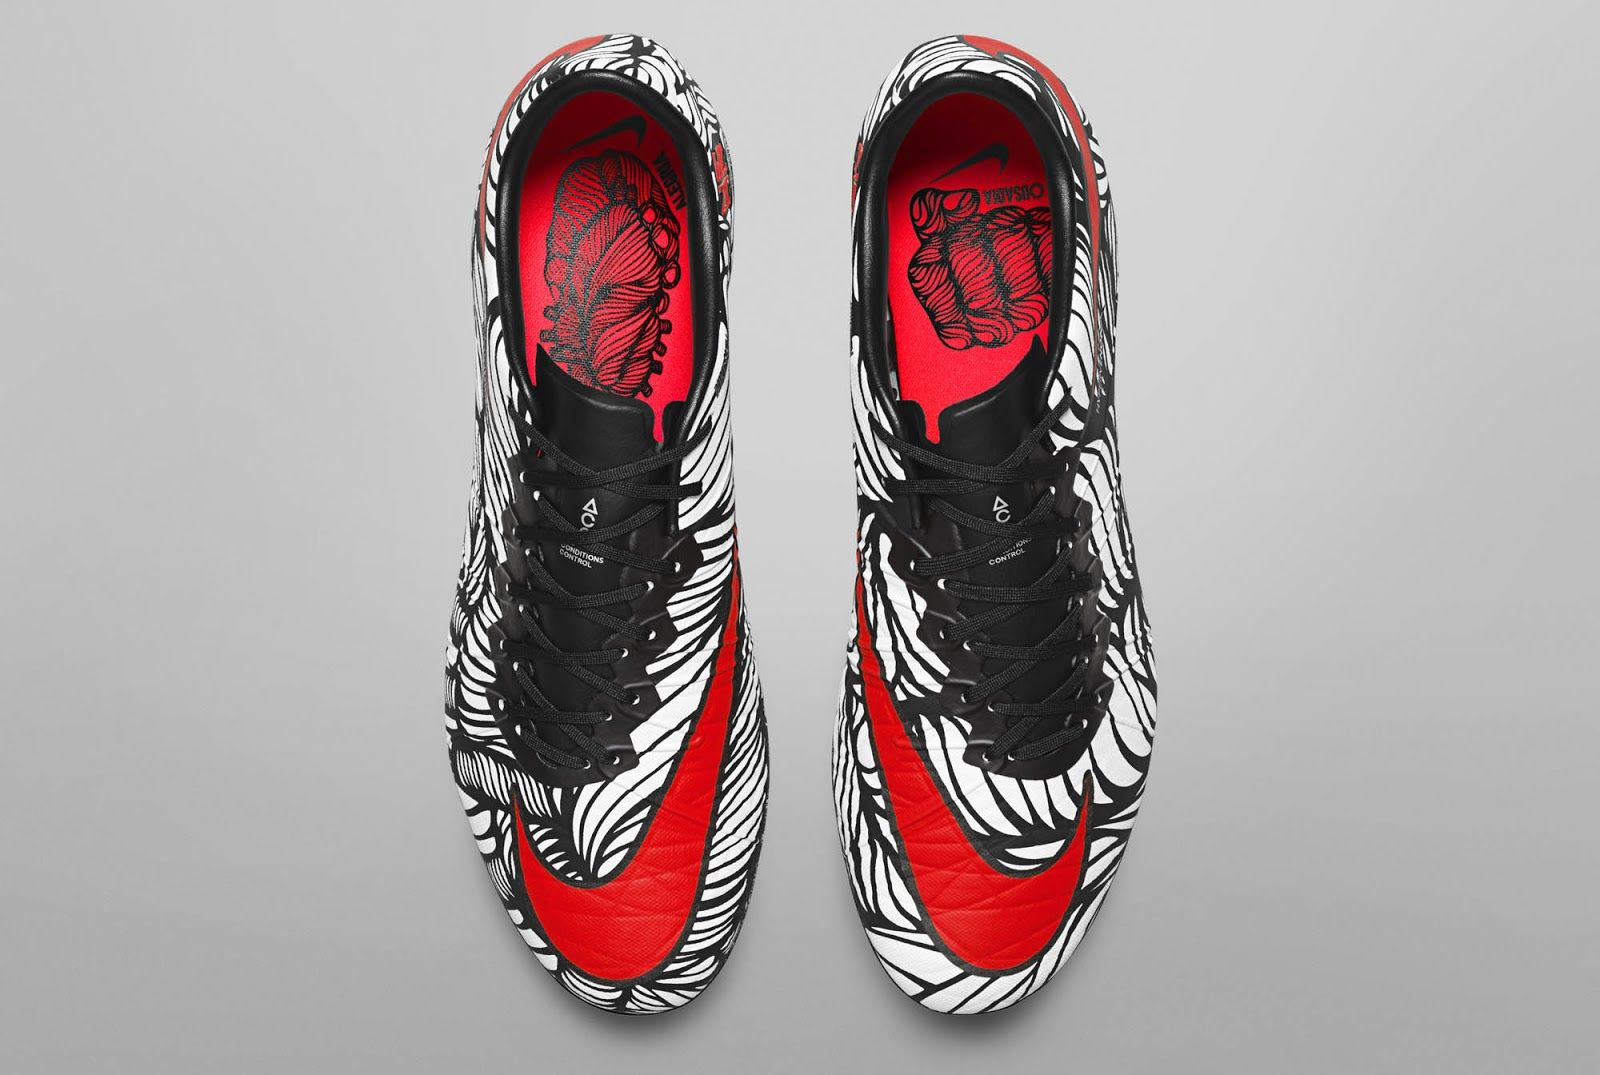 ea84f1438 The new Nike Hypervenom Phinish II 2016 Neymar signature boots introduce a  bold design